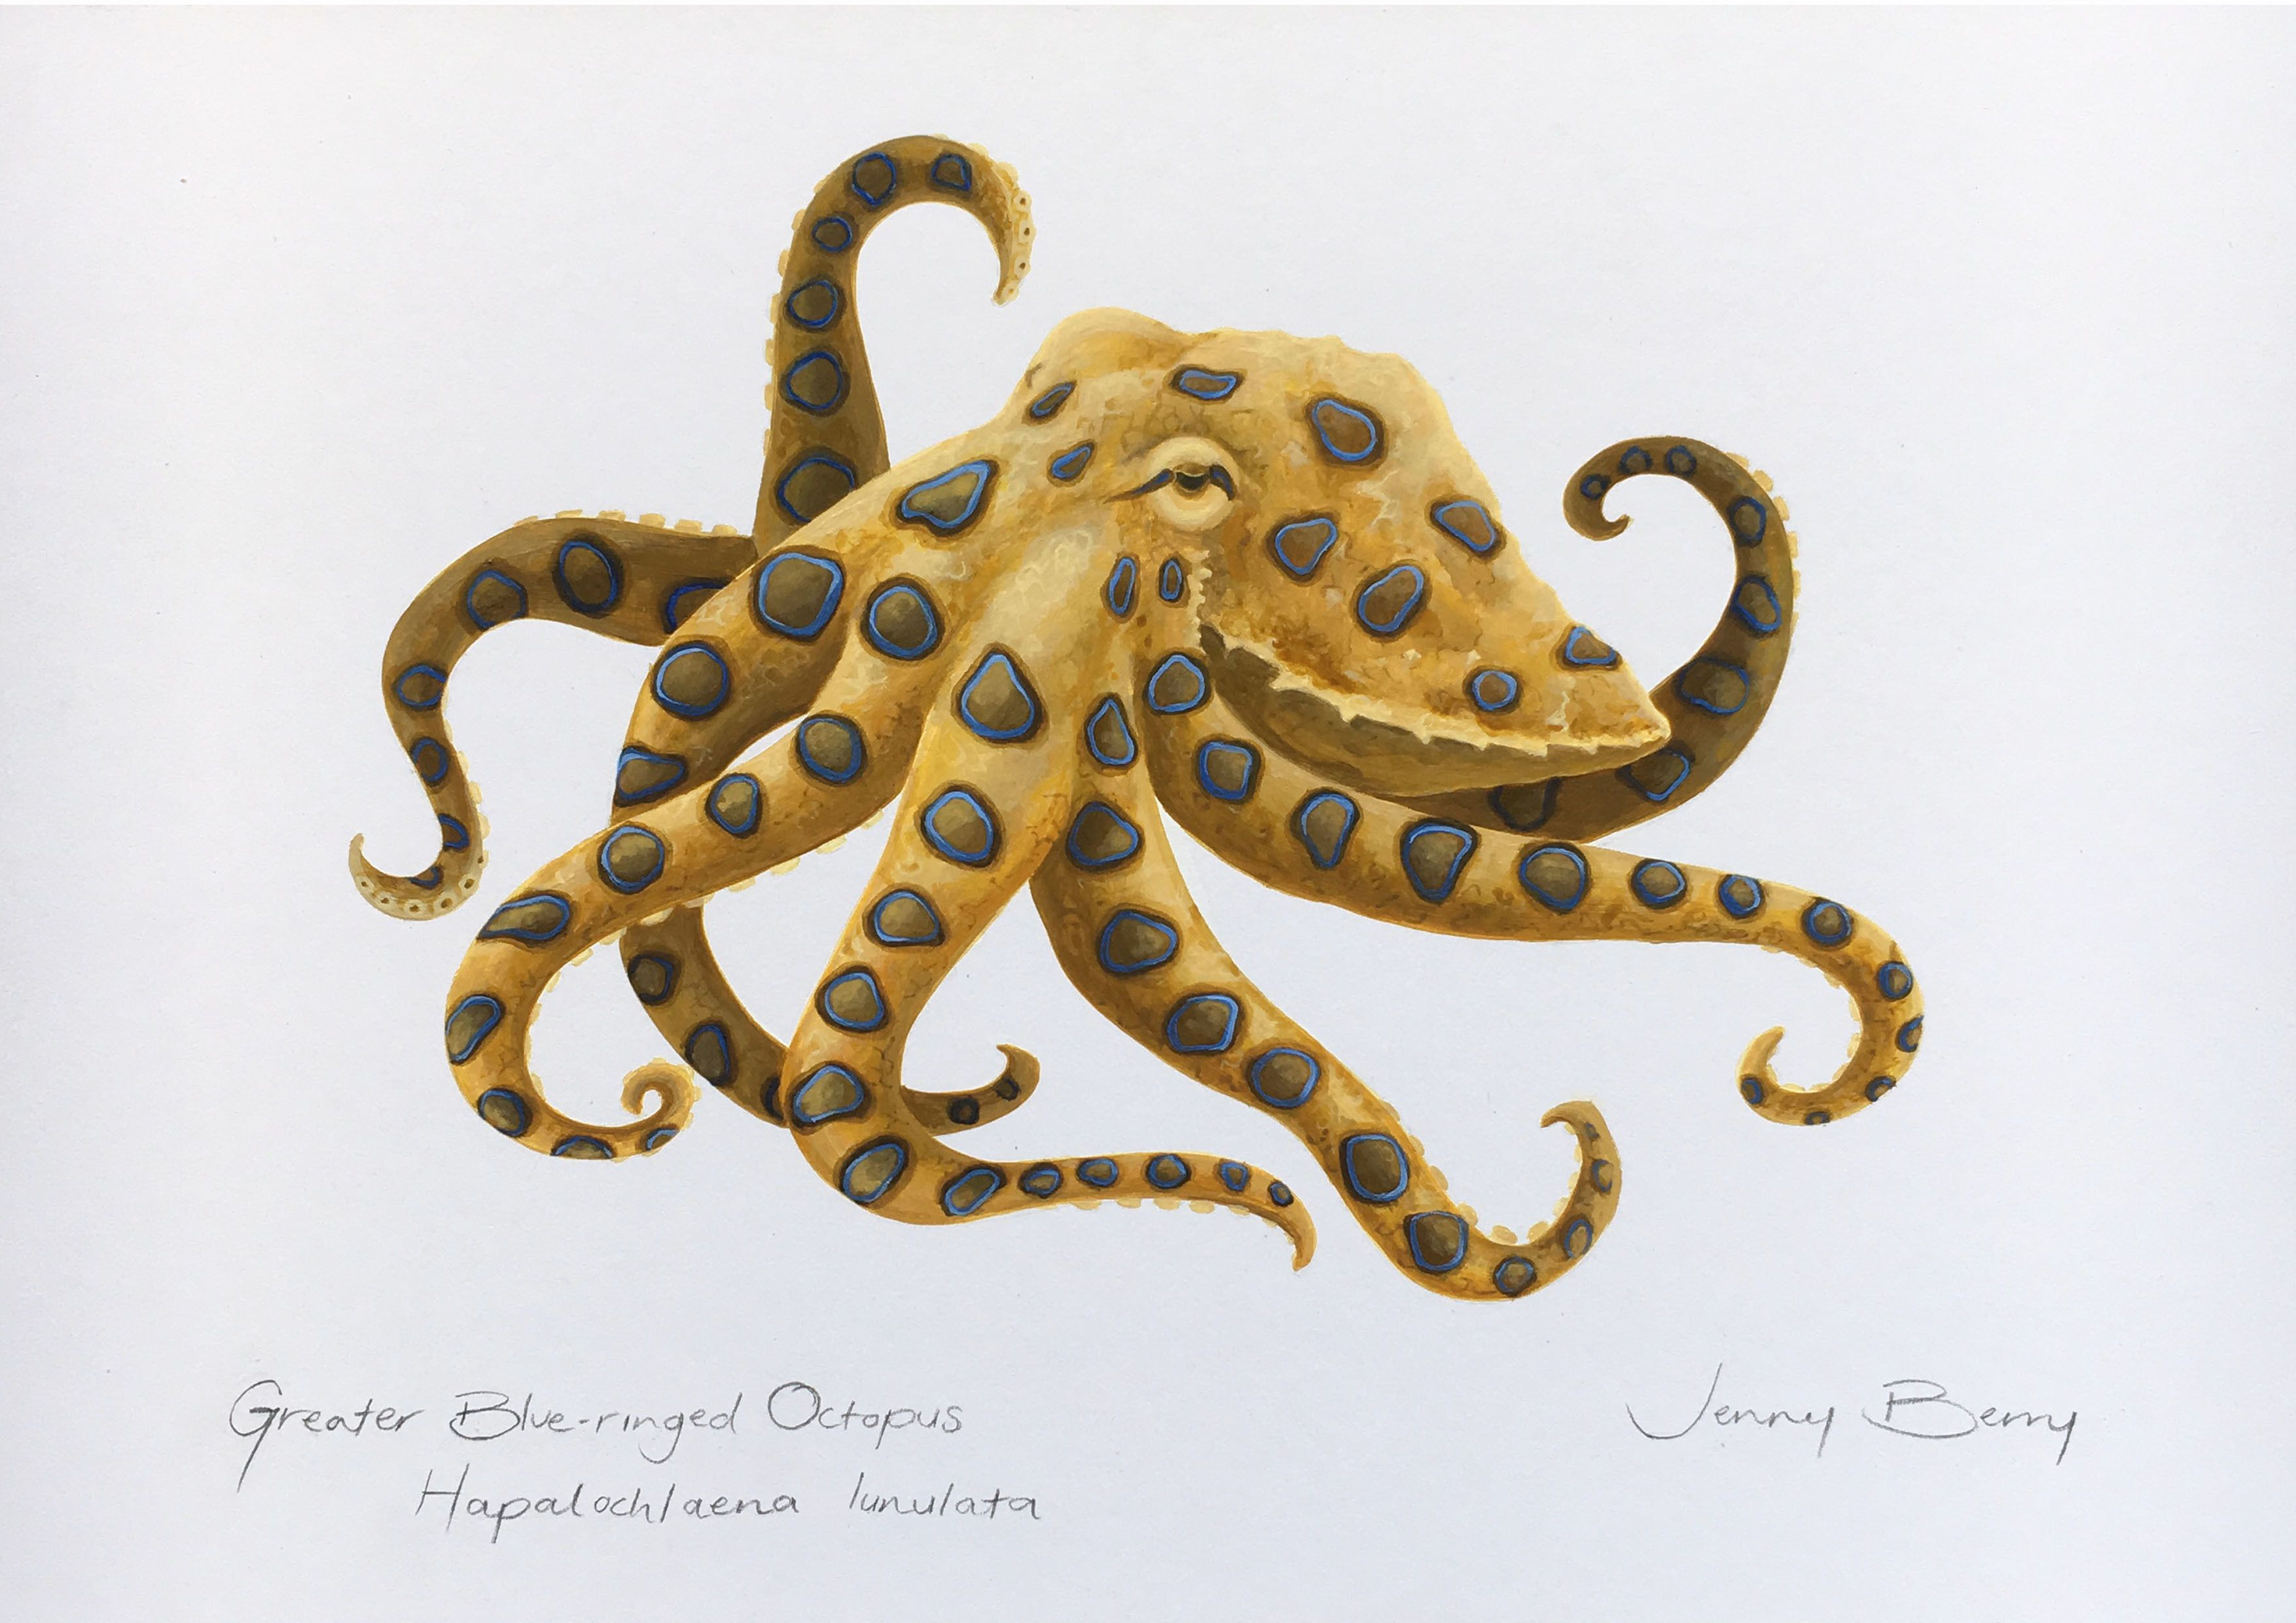 Blue Ringed Octopus Scientific Illustration By Jenny Berry Paintings For Sale Bluethumb Octopus Art Print Scientific Illustration Octopus Illustration